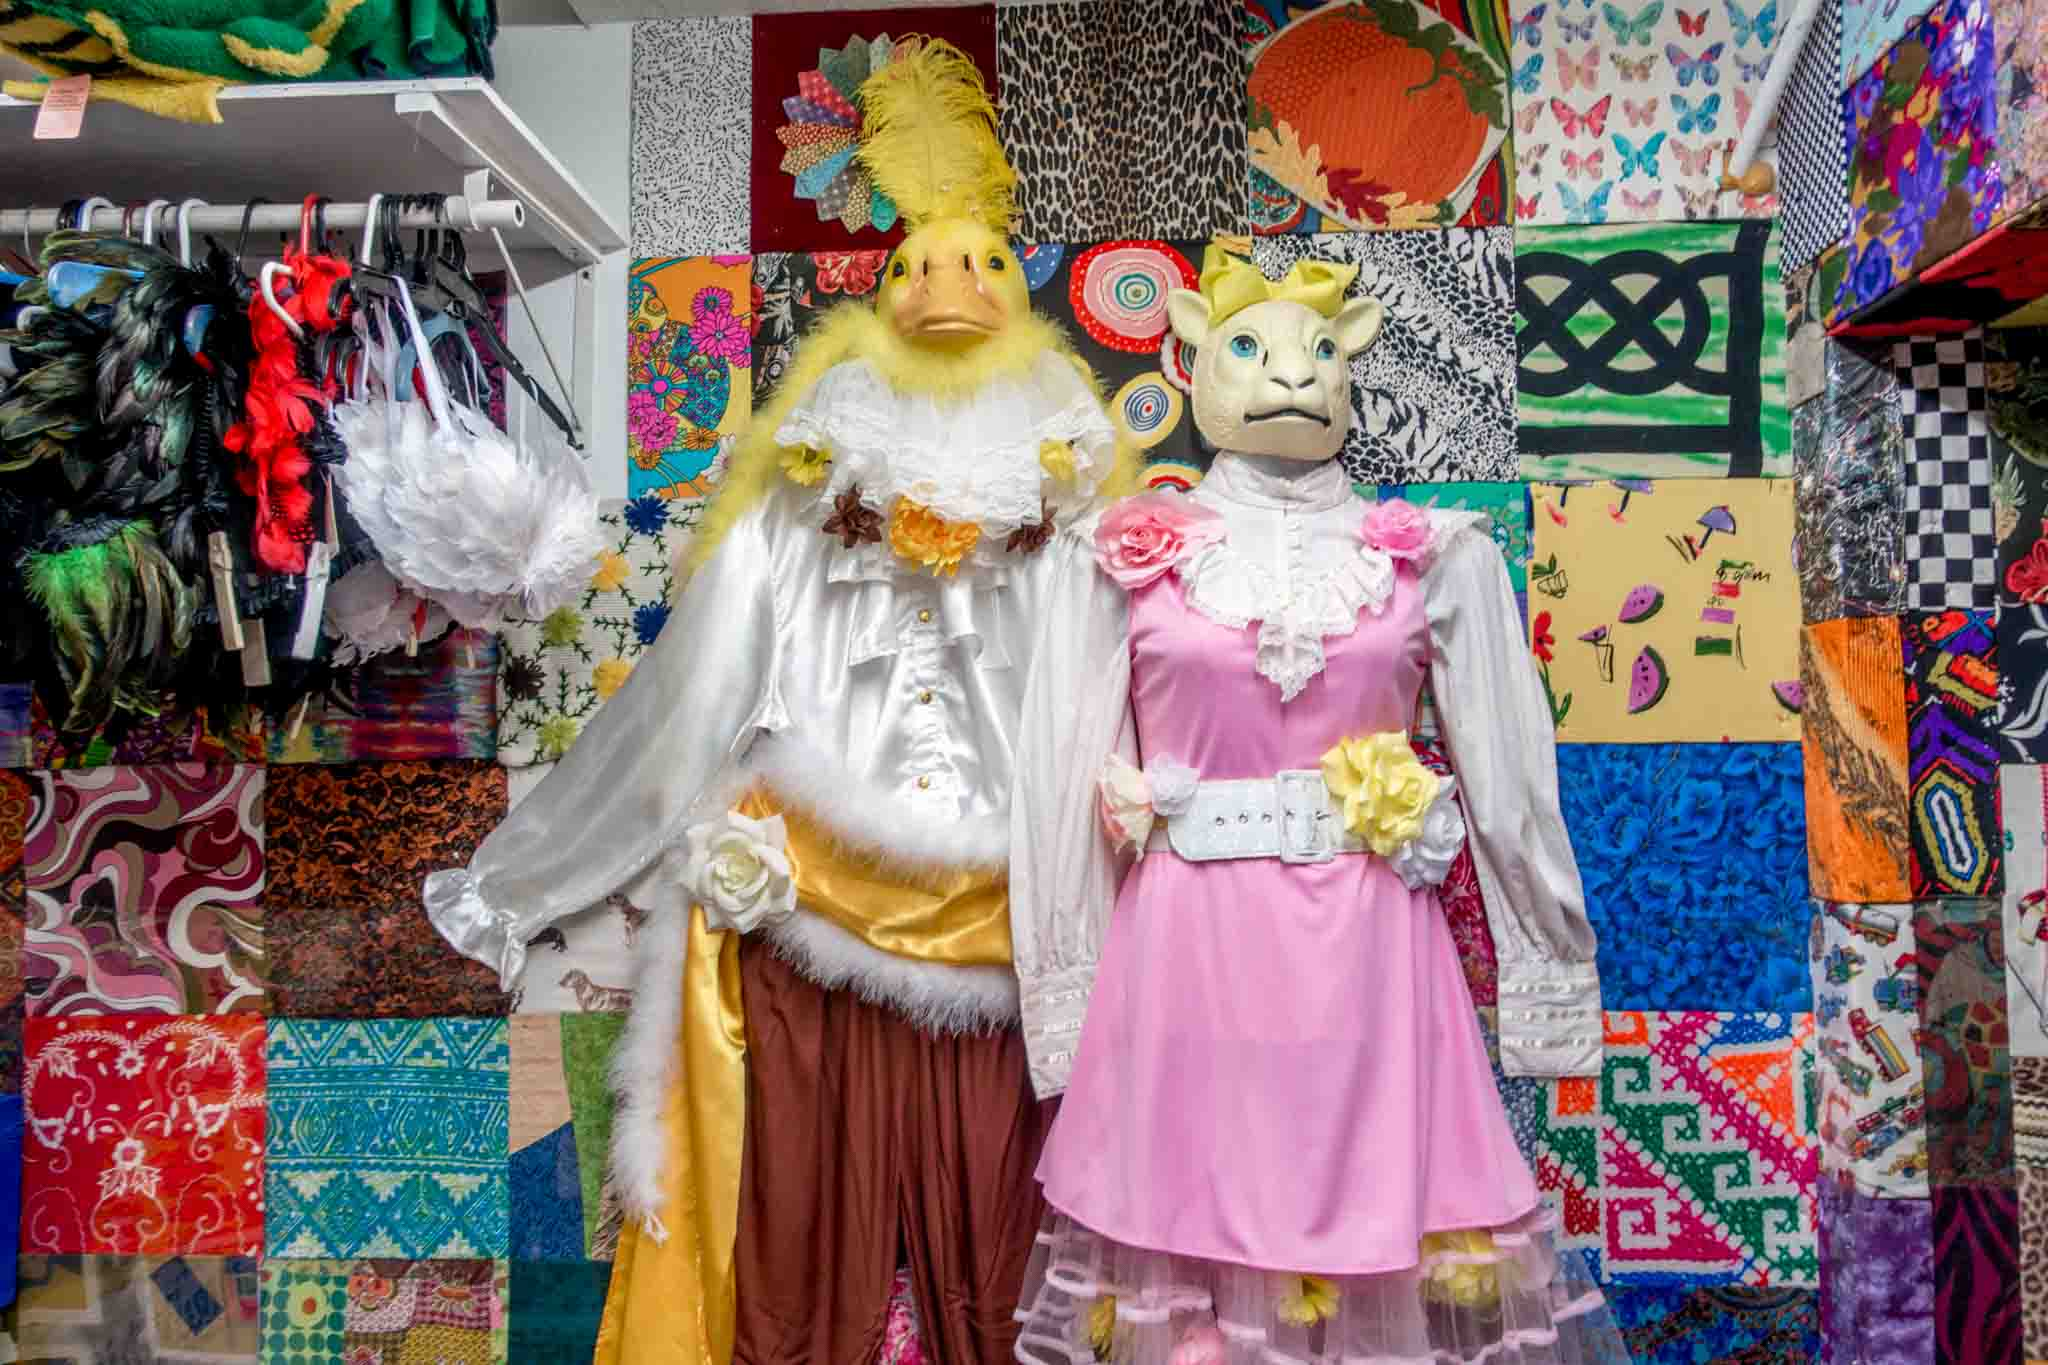 Mannequins wearing costumes and animal masks